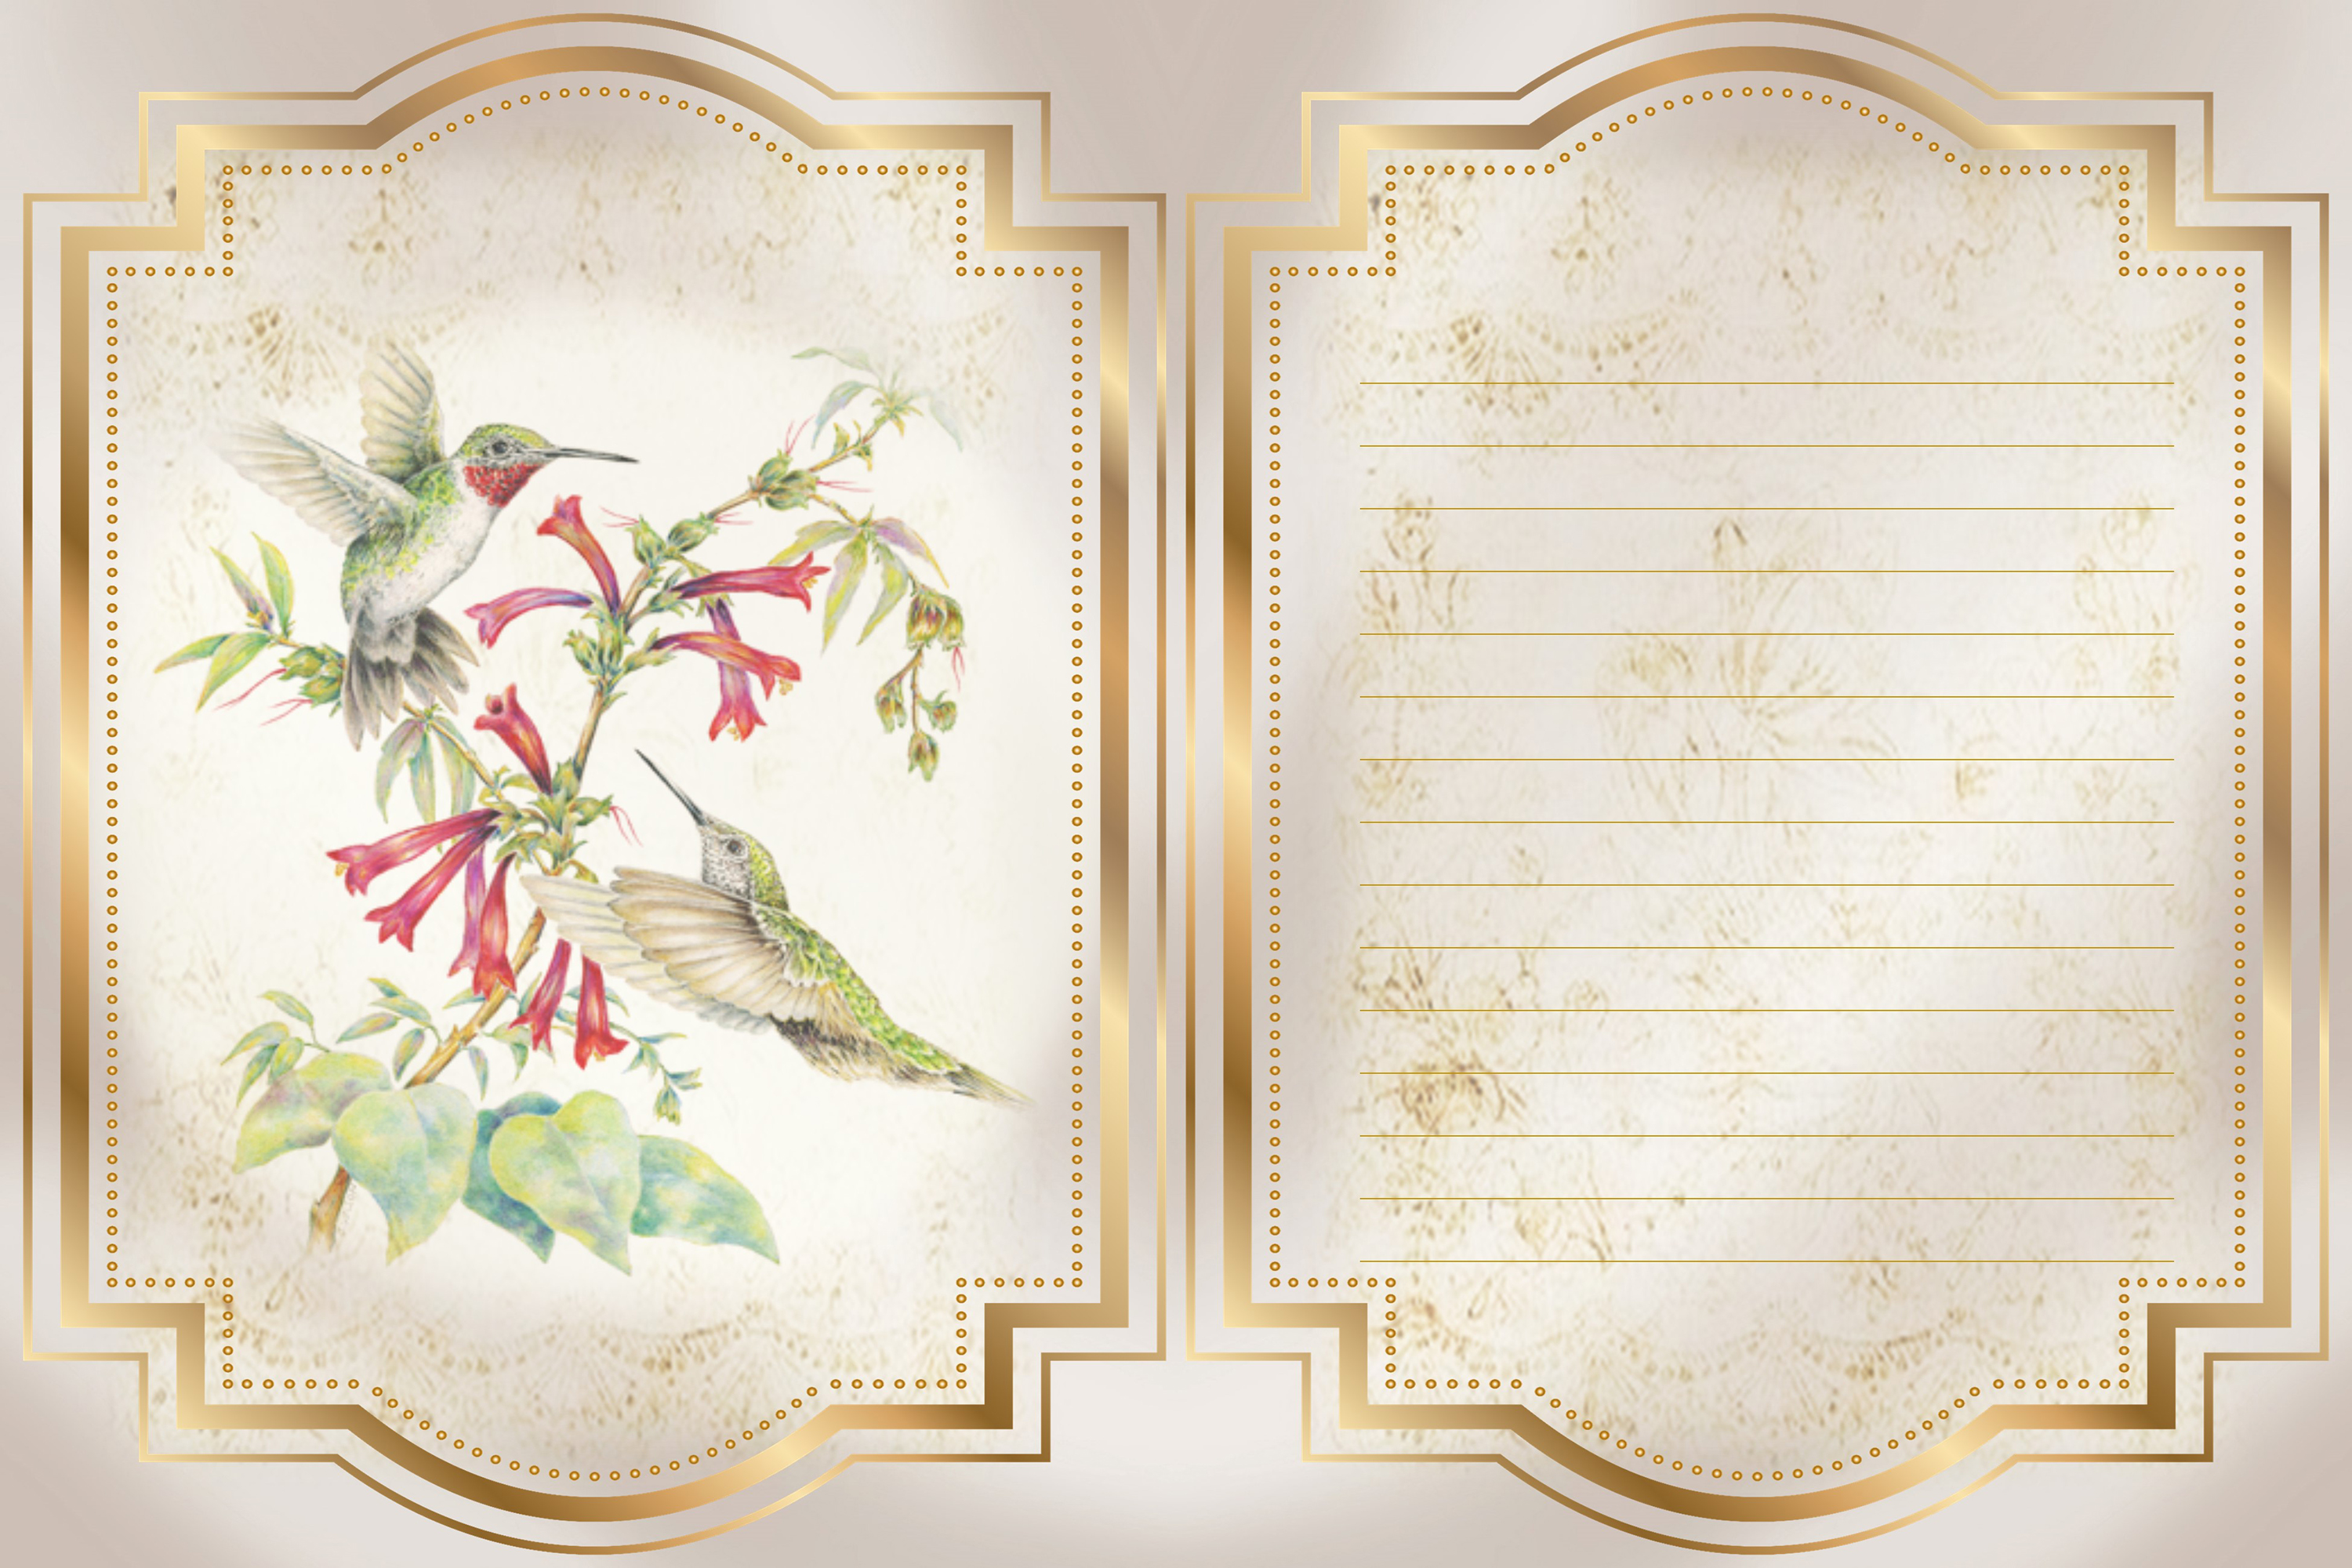 Hummingbird Journaling Kit Backgrounds Commercial Use example image 6